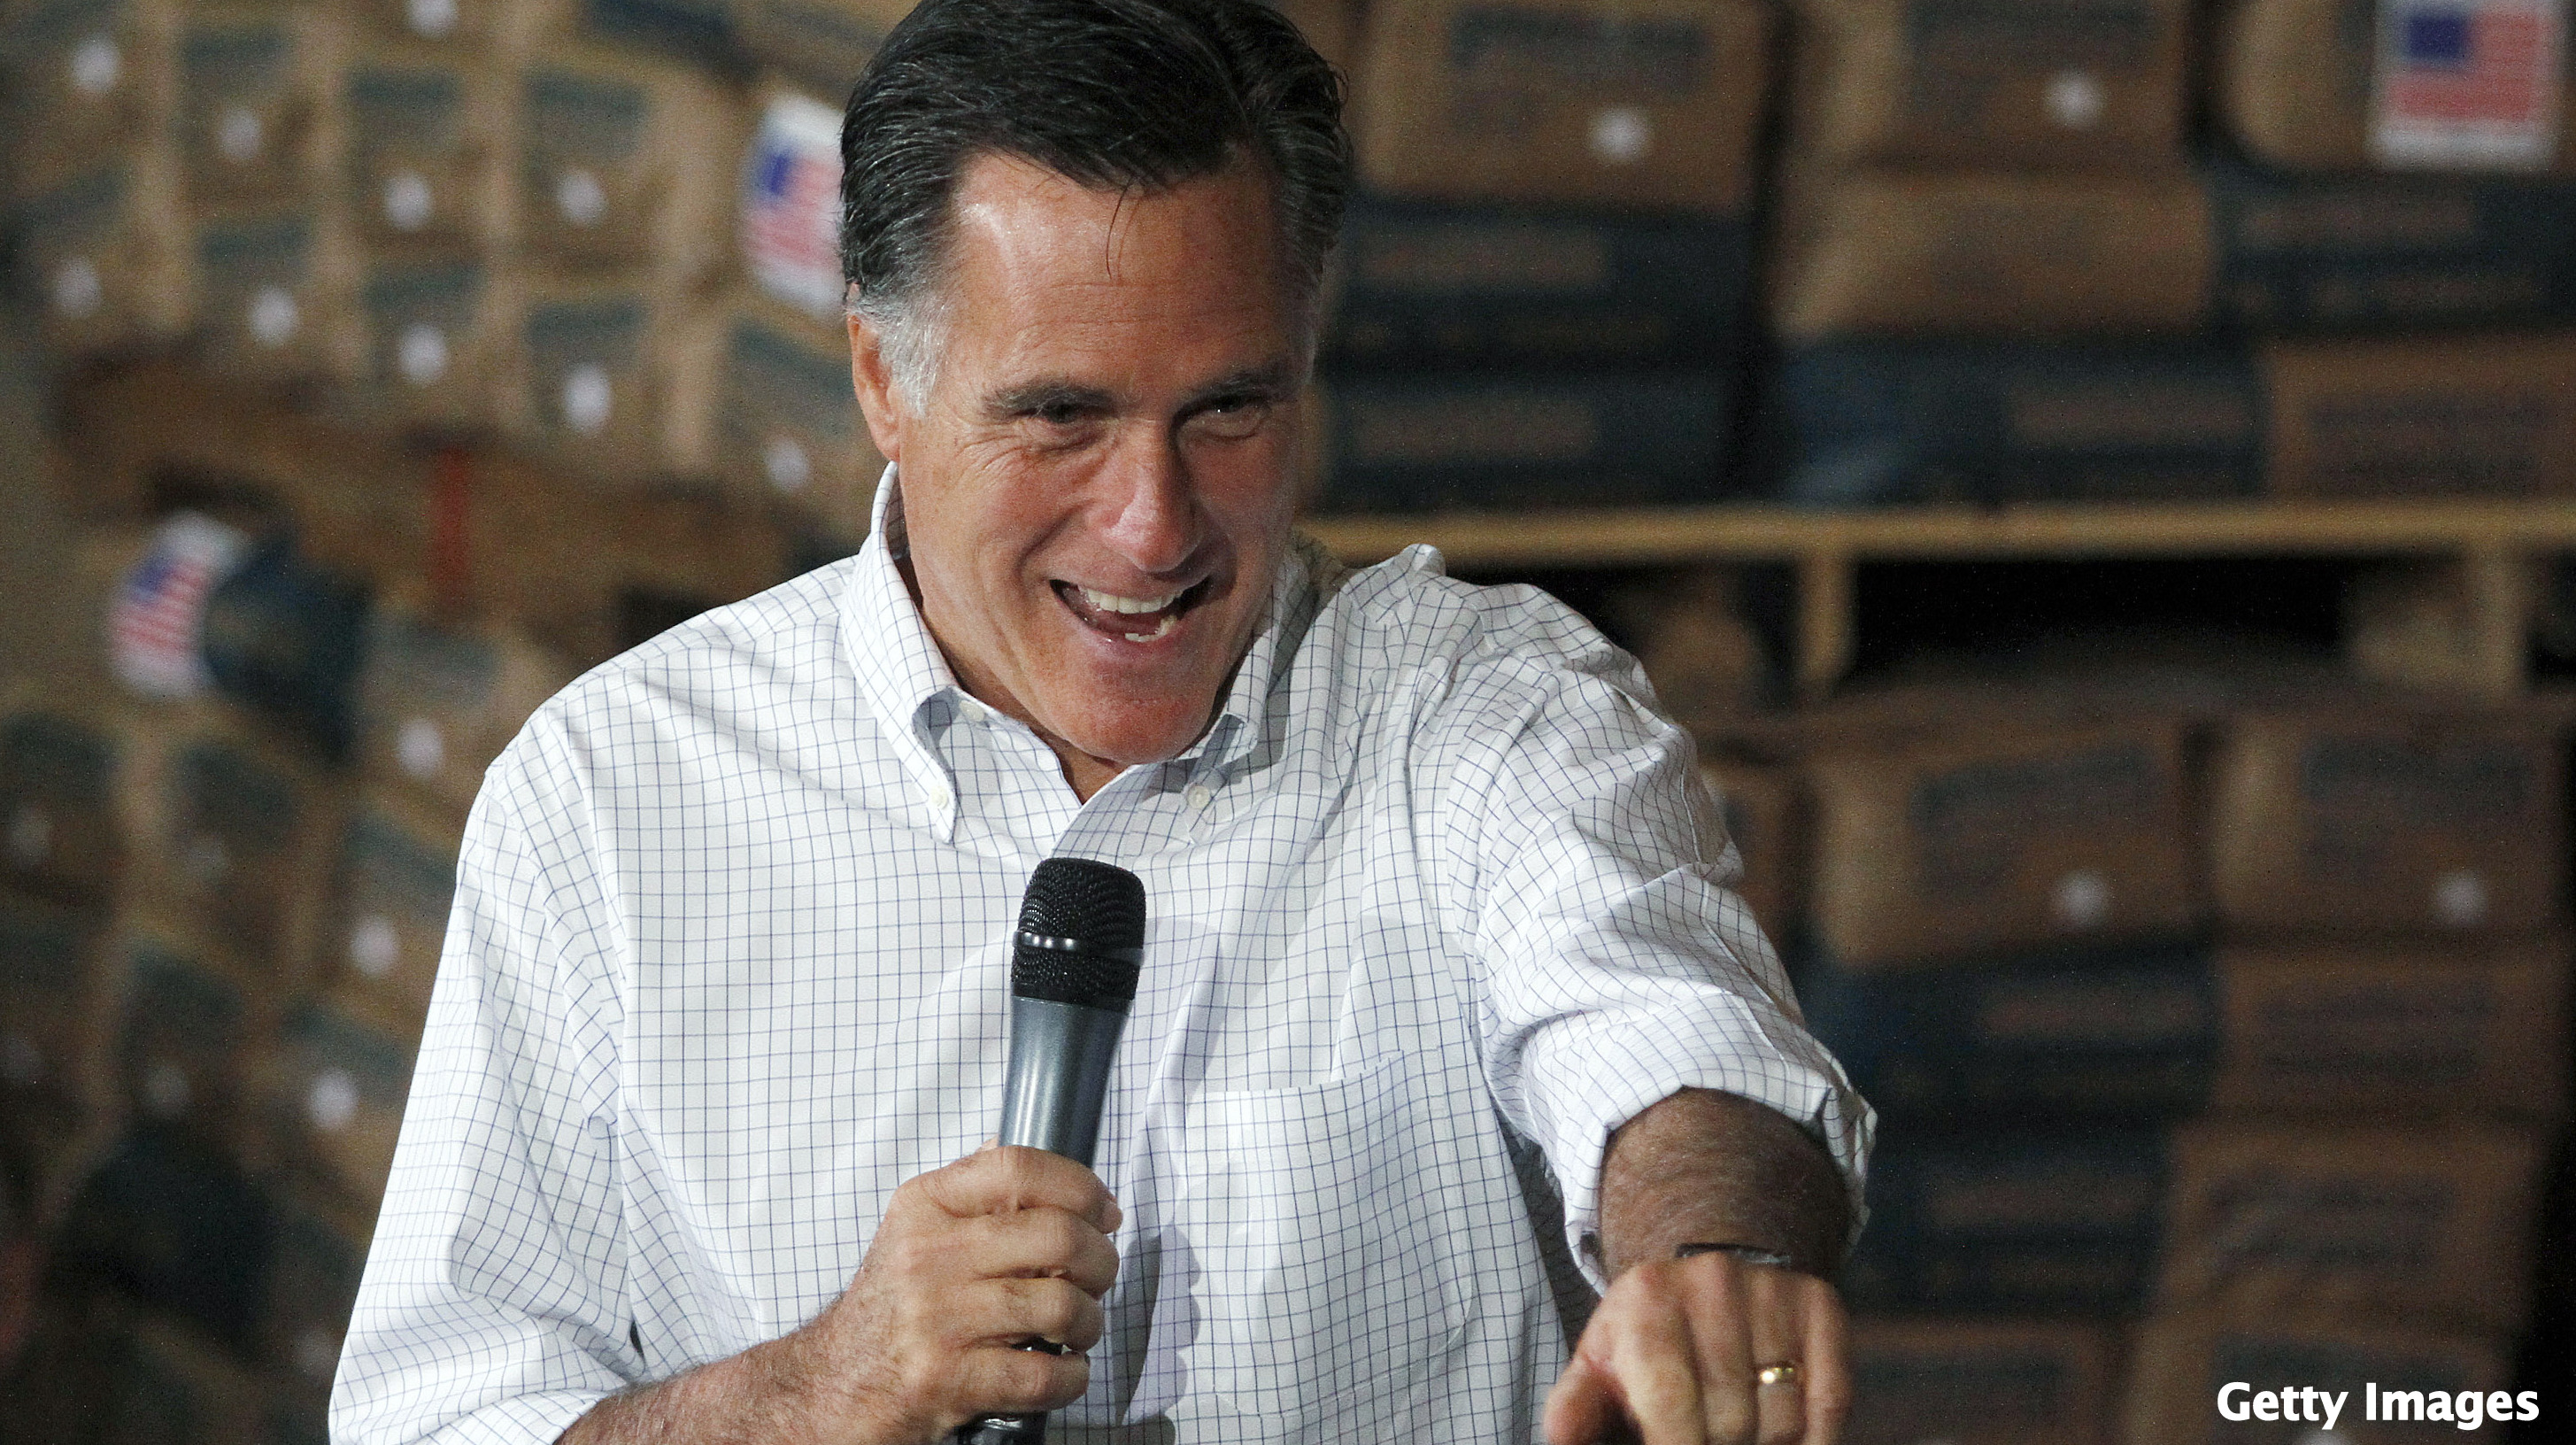 Romney's April cash haul nearly matches Obama's